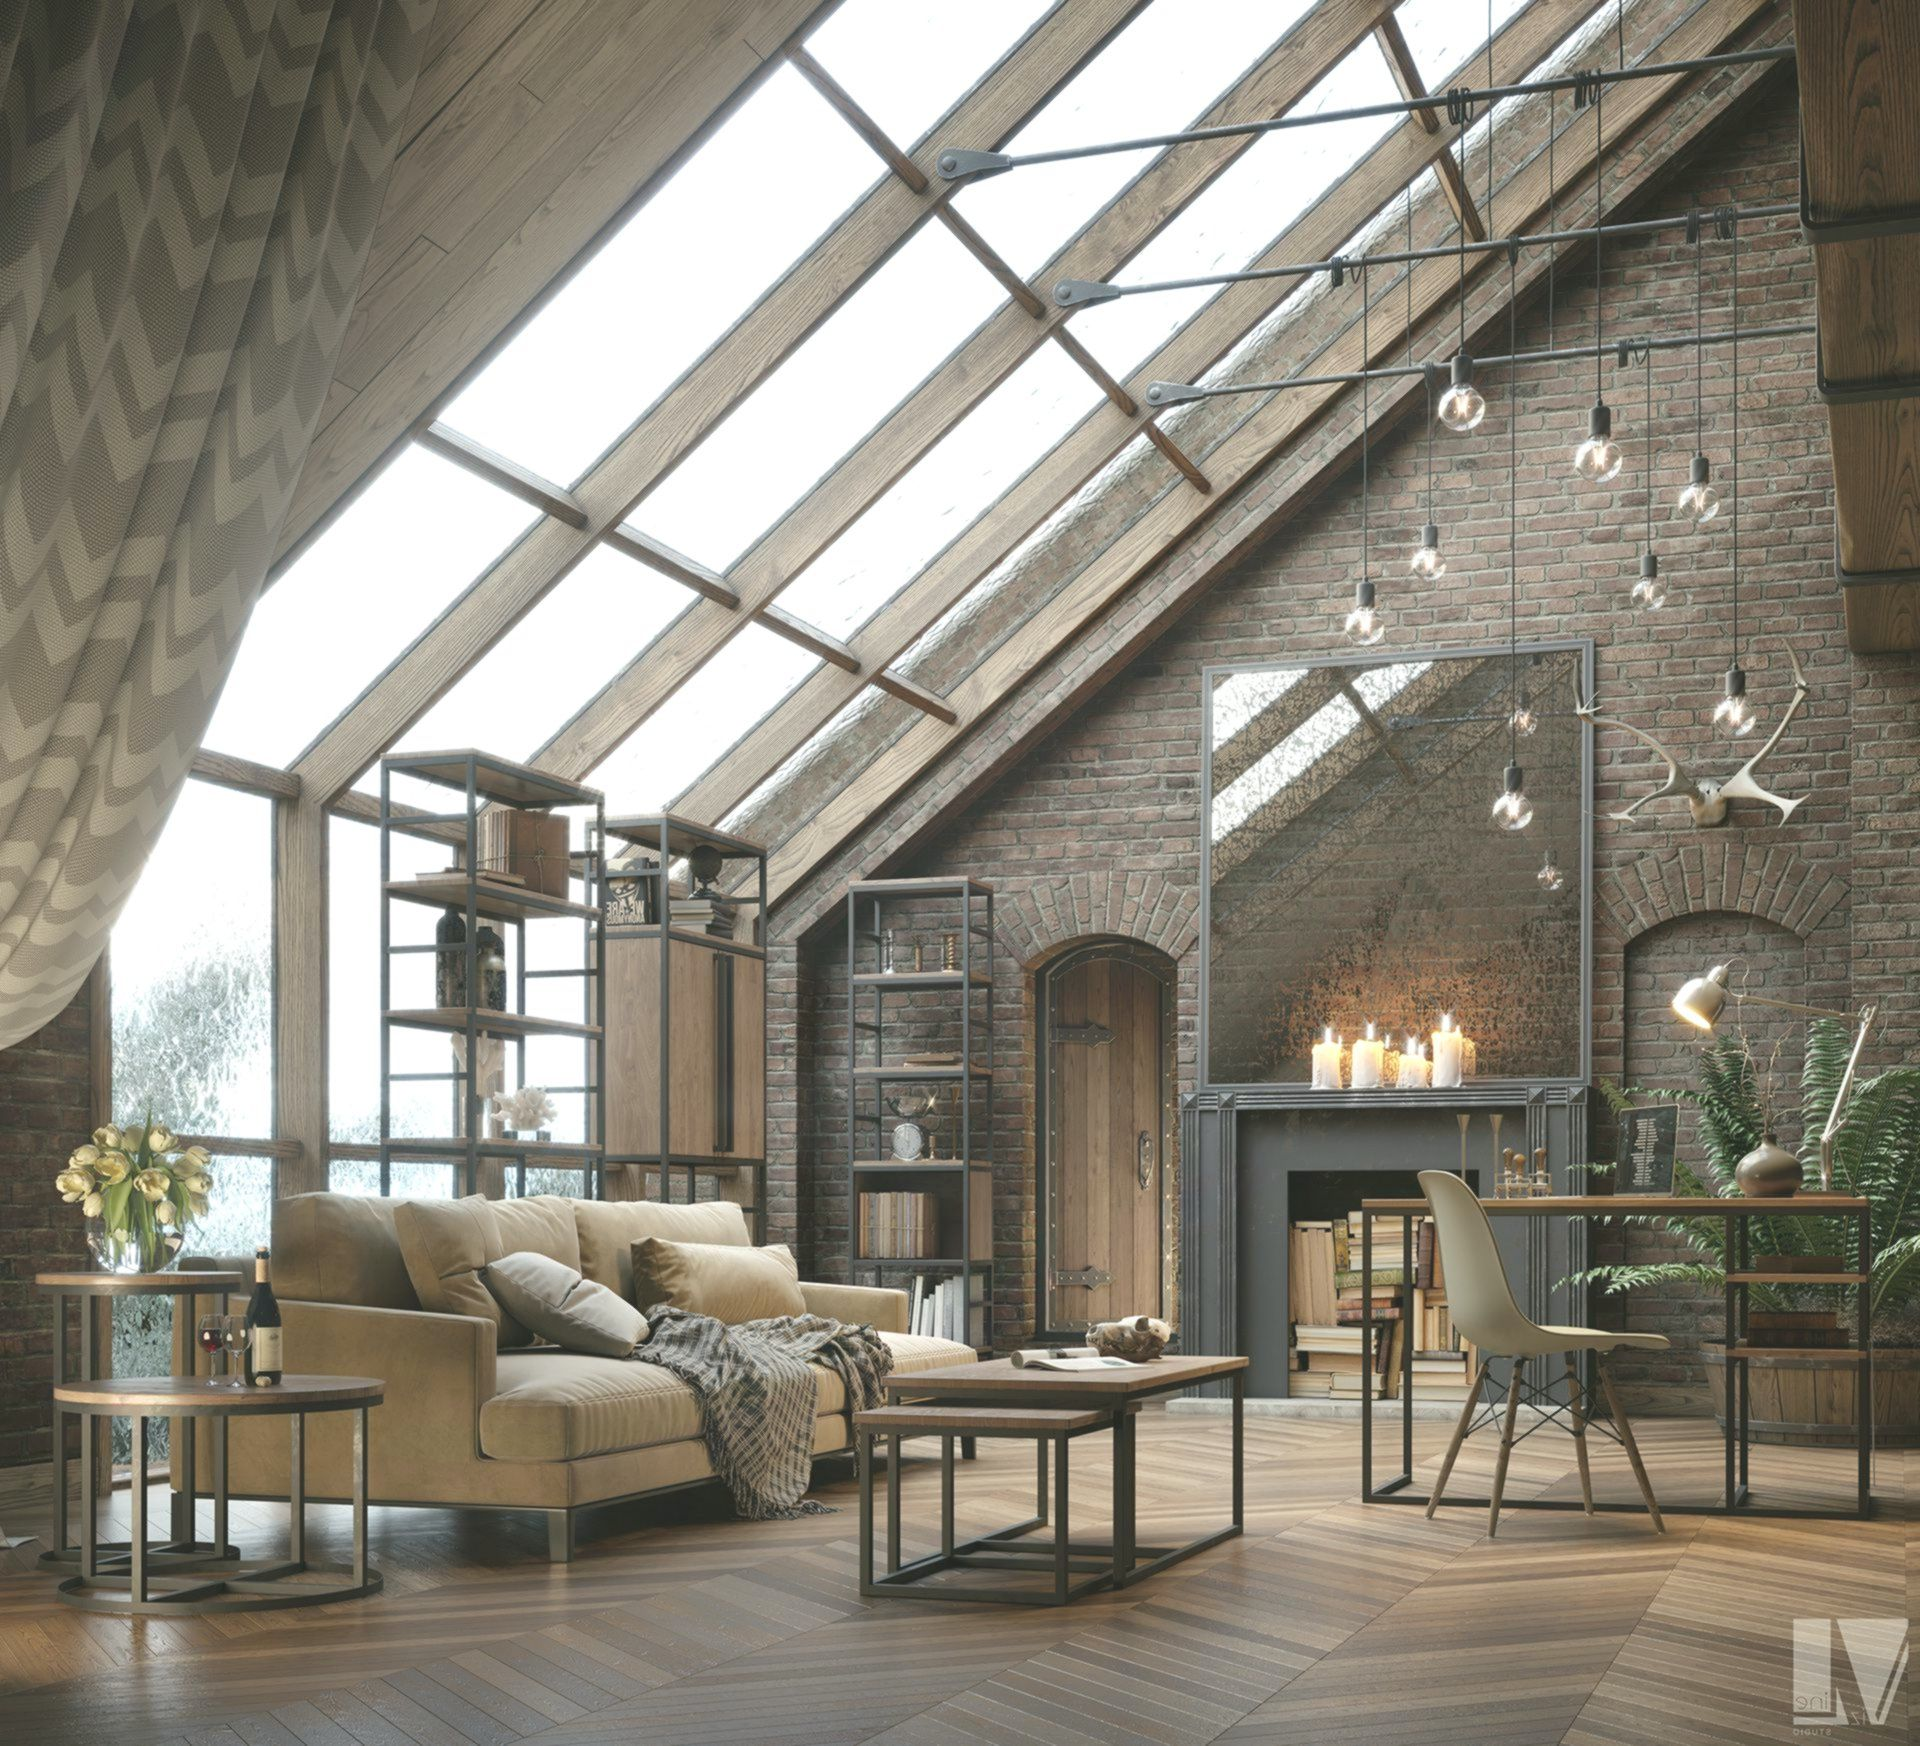 Industrial And Vintage Lofts To The East Planete Deco A Homes World In 2020 House Design Loft House